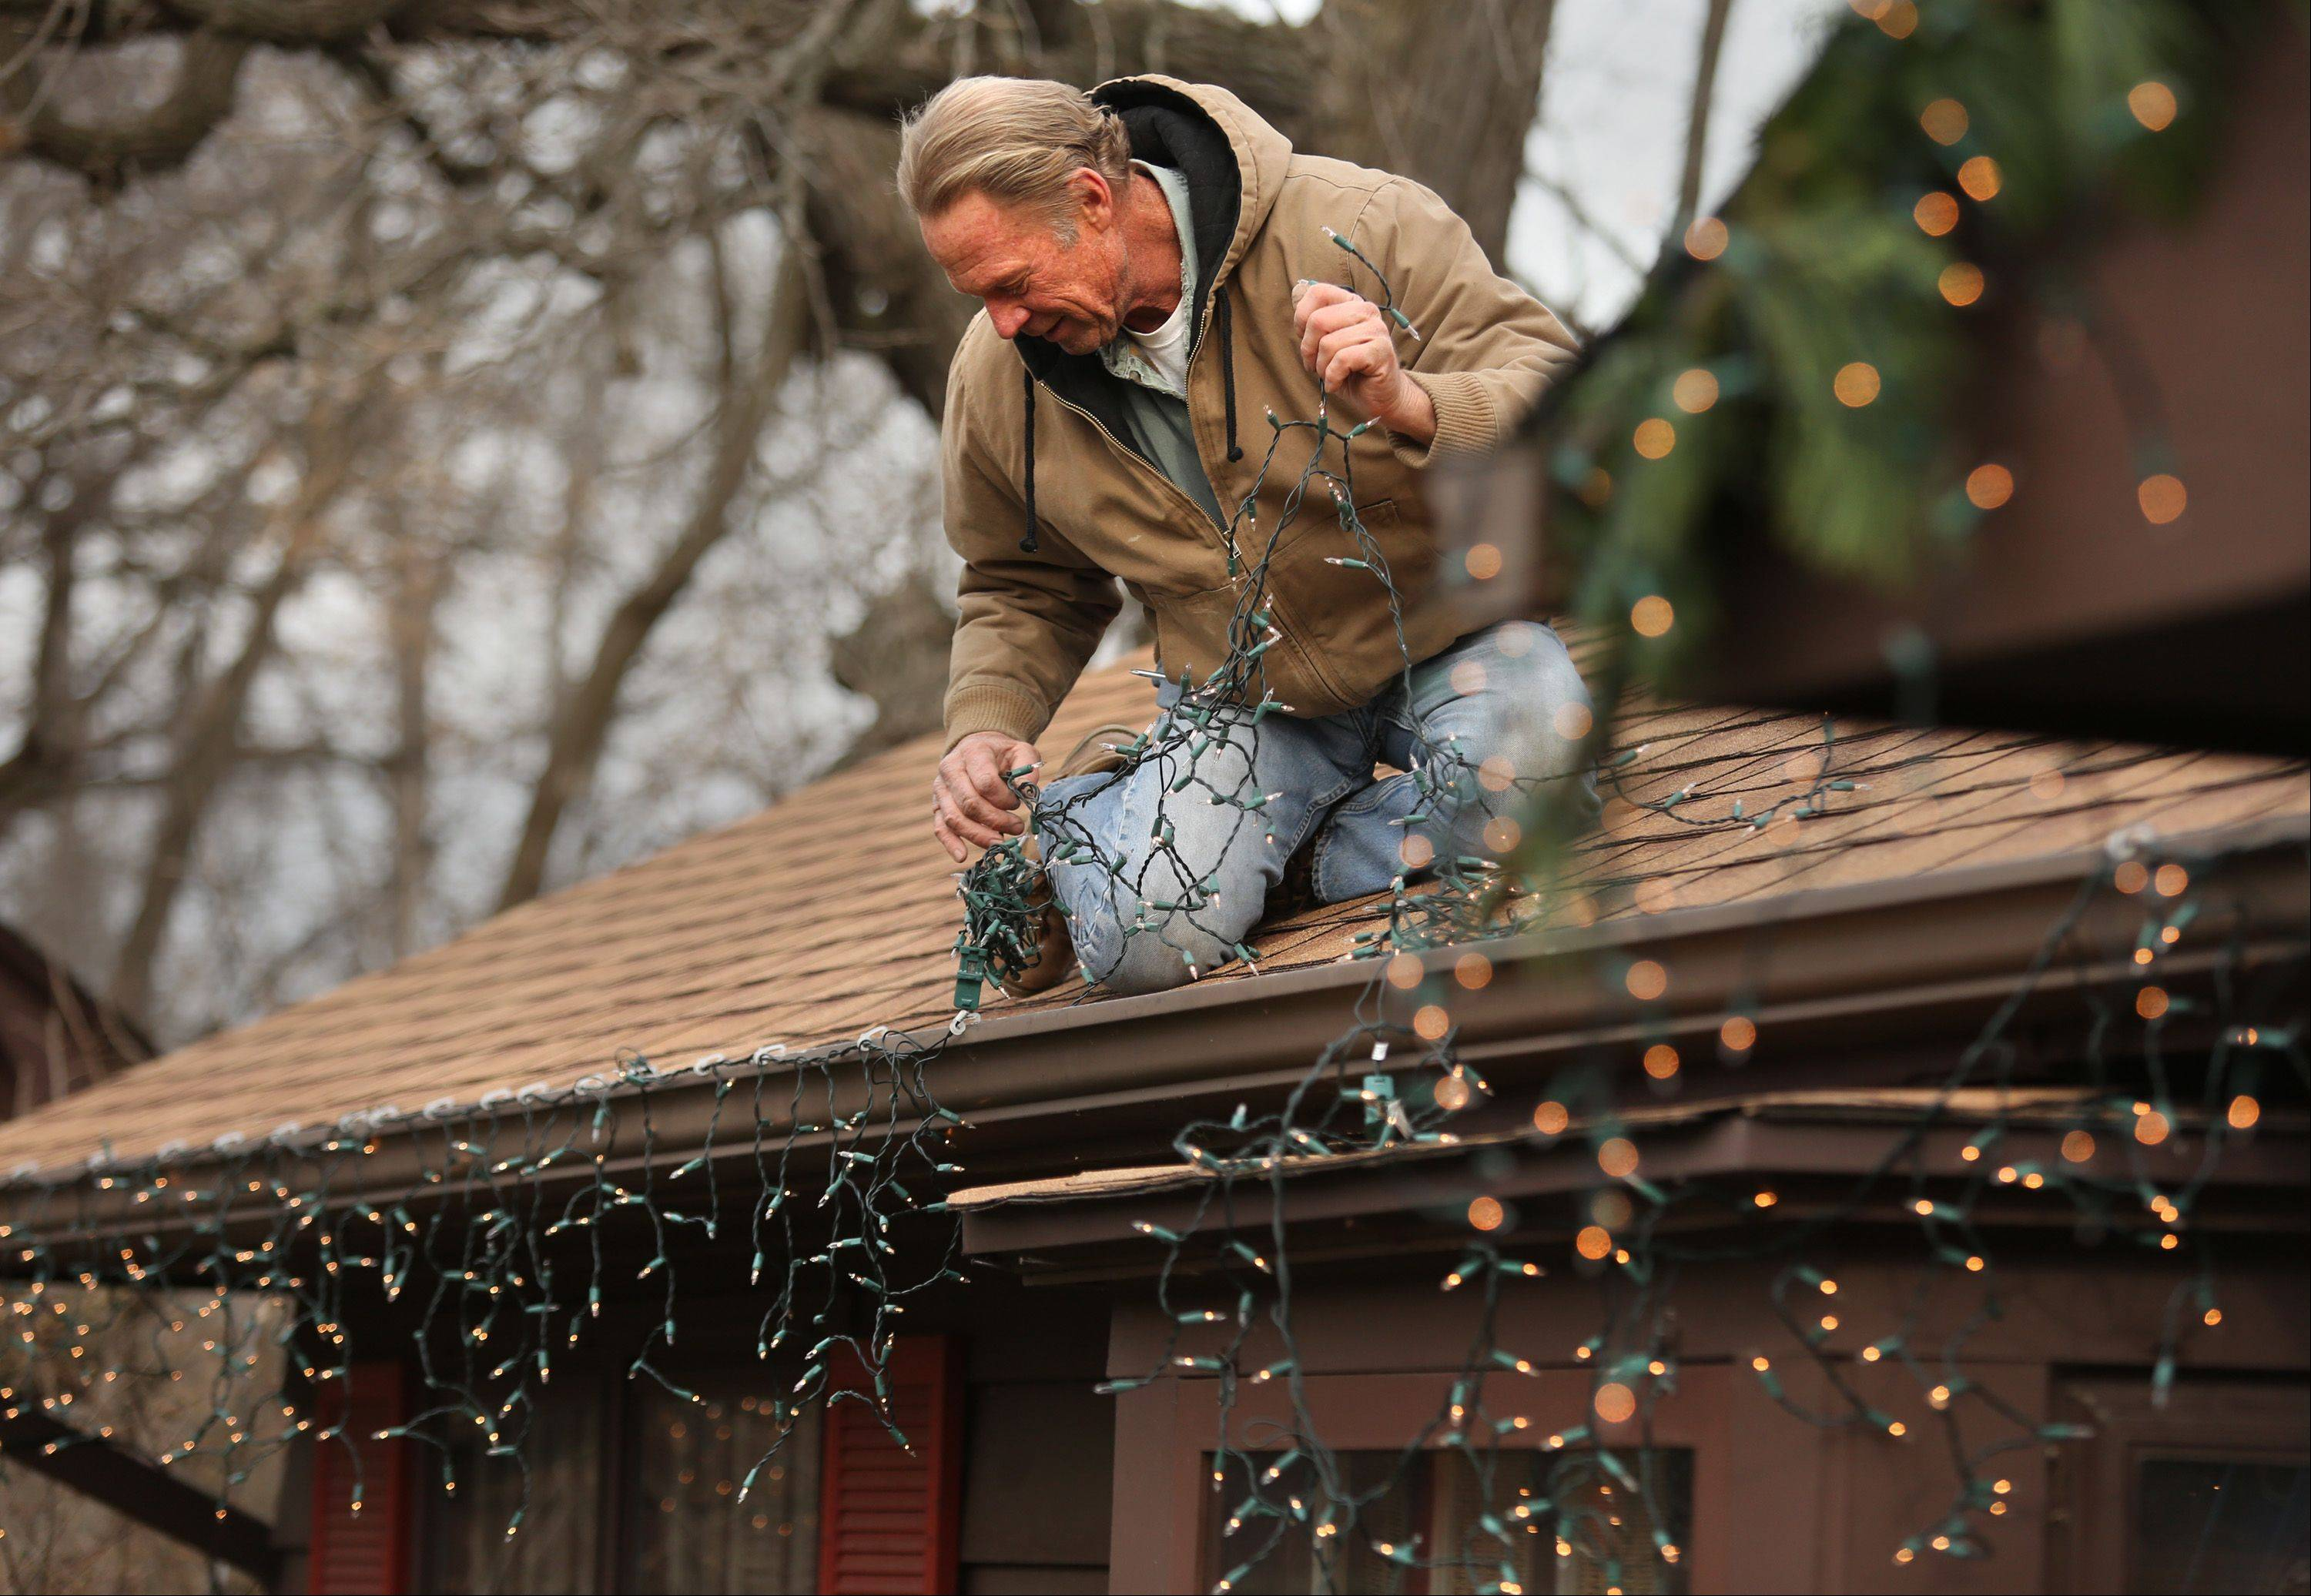 Steve Patzer of St. Charles decorates his house with Christmas lights Monday, holding to a long-running tradition of having it ready for the return home of his three daughters.